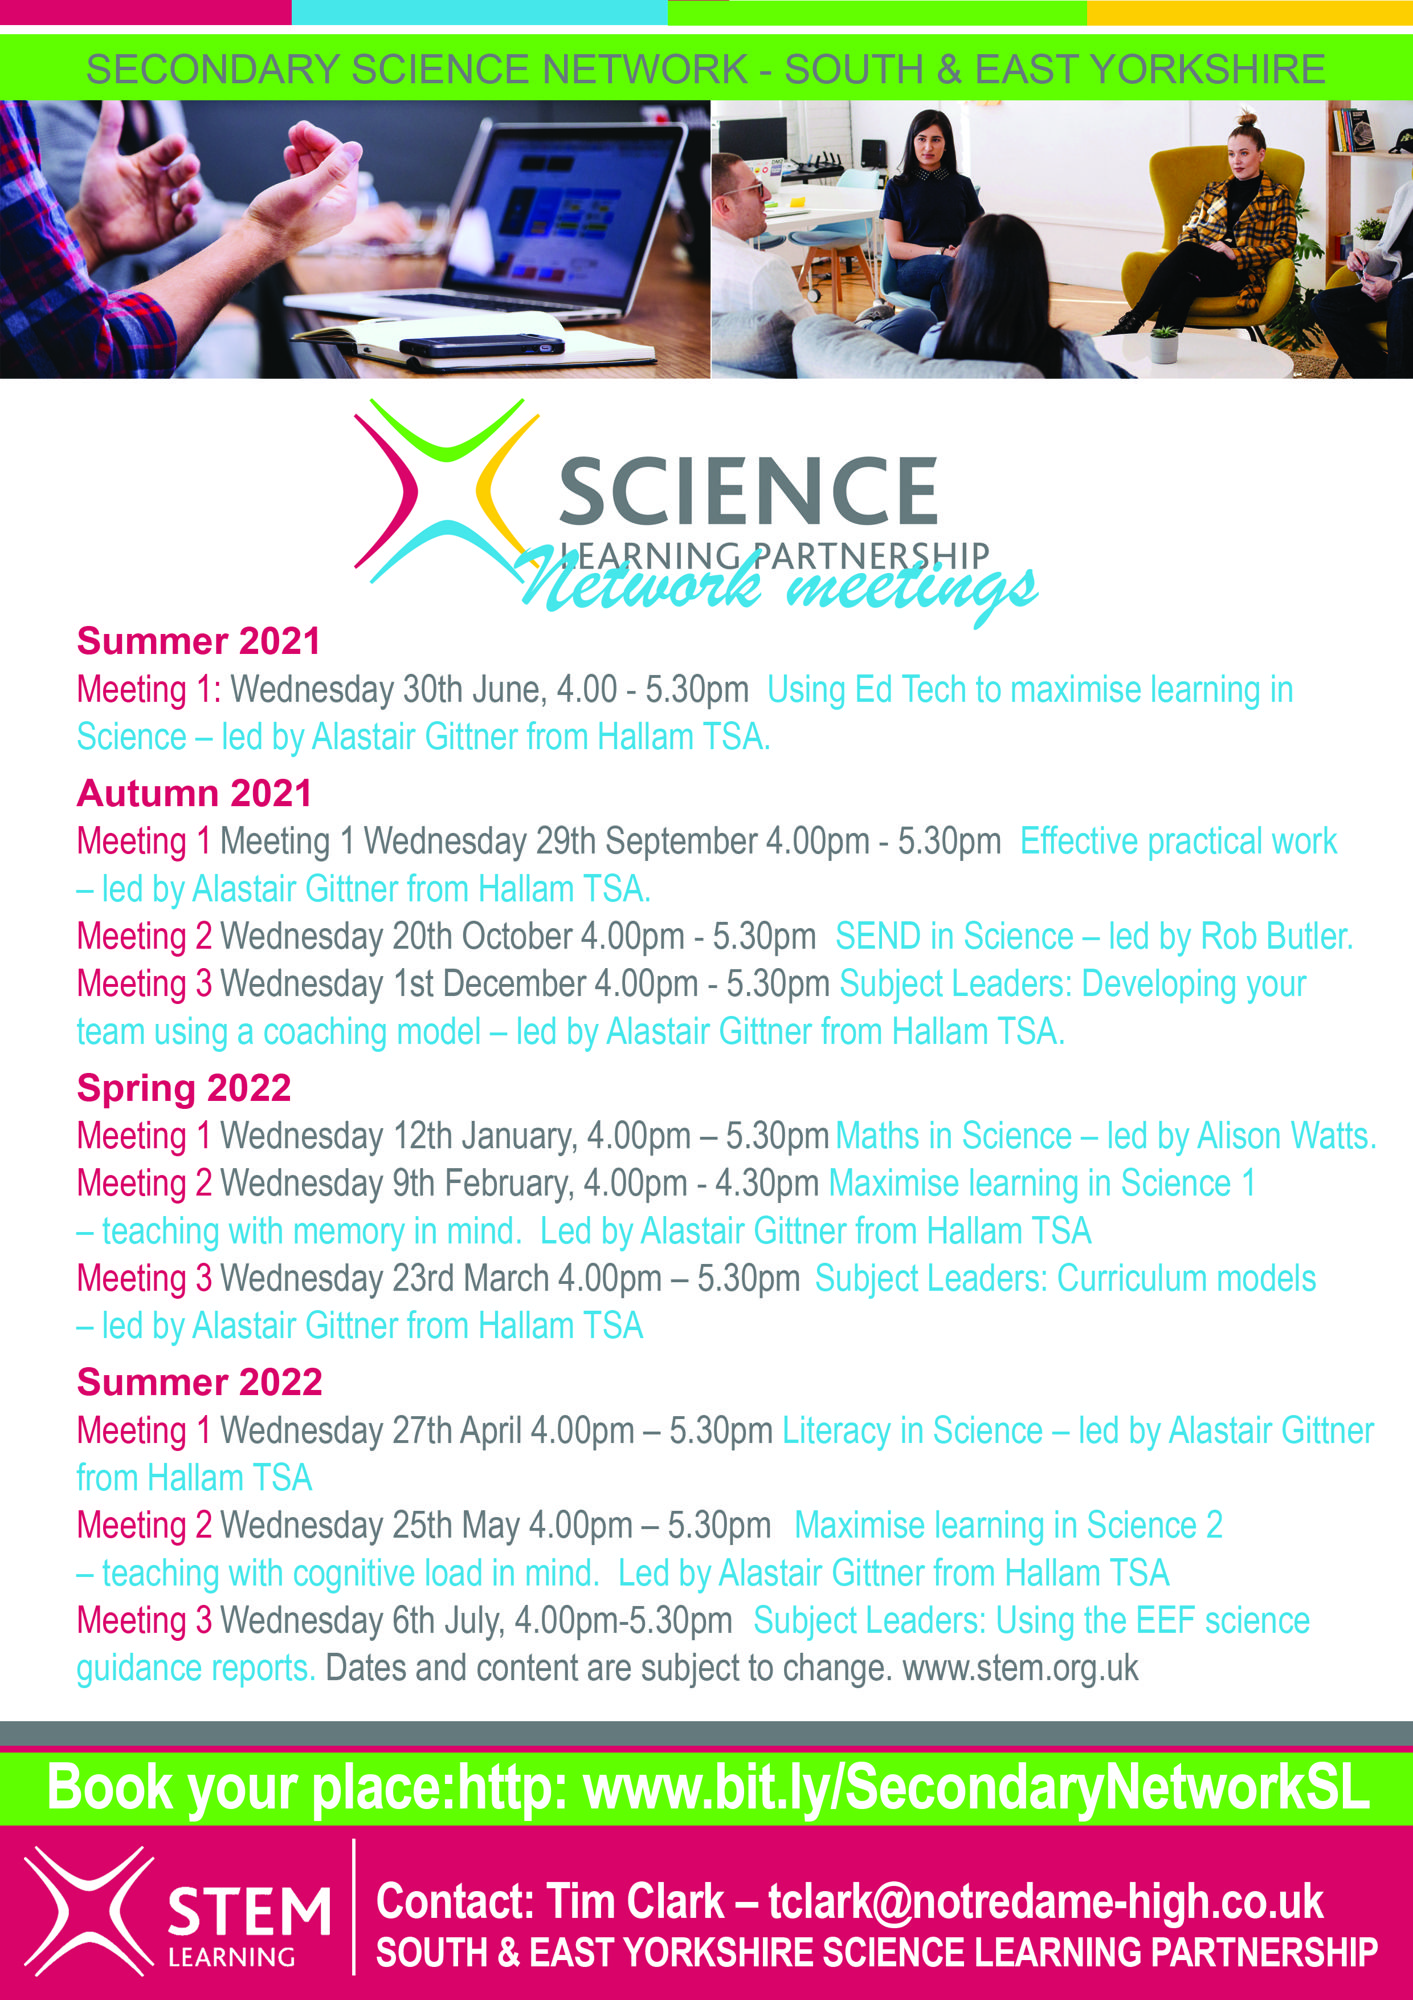 Secondary Science network dates